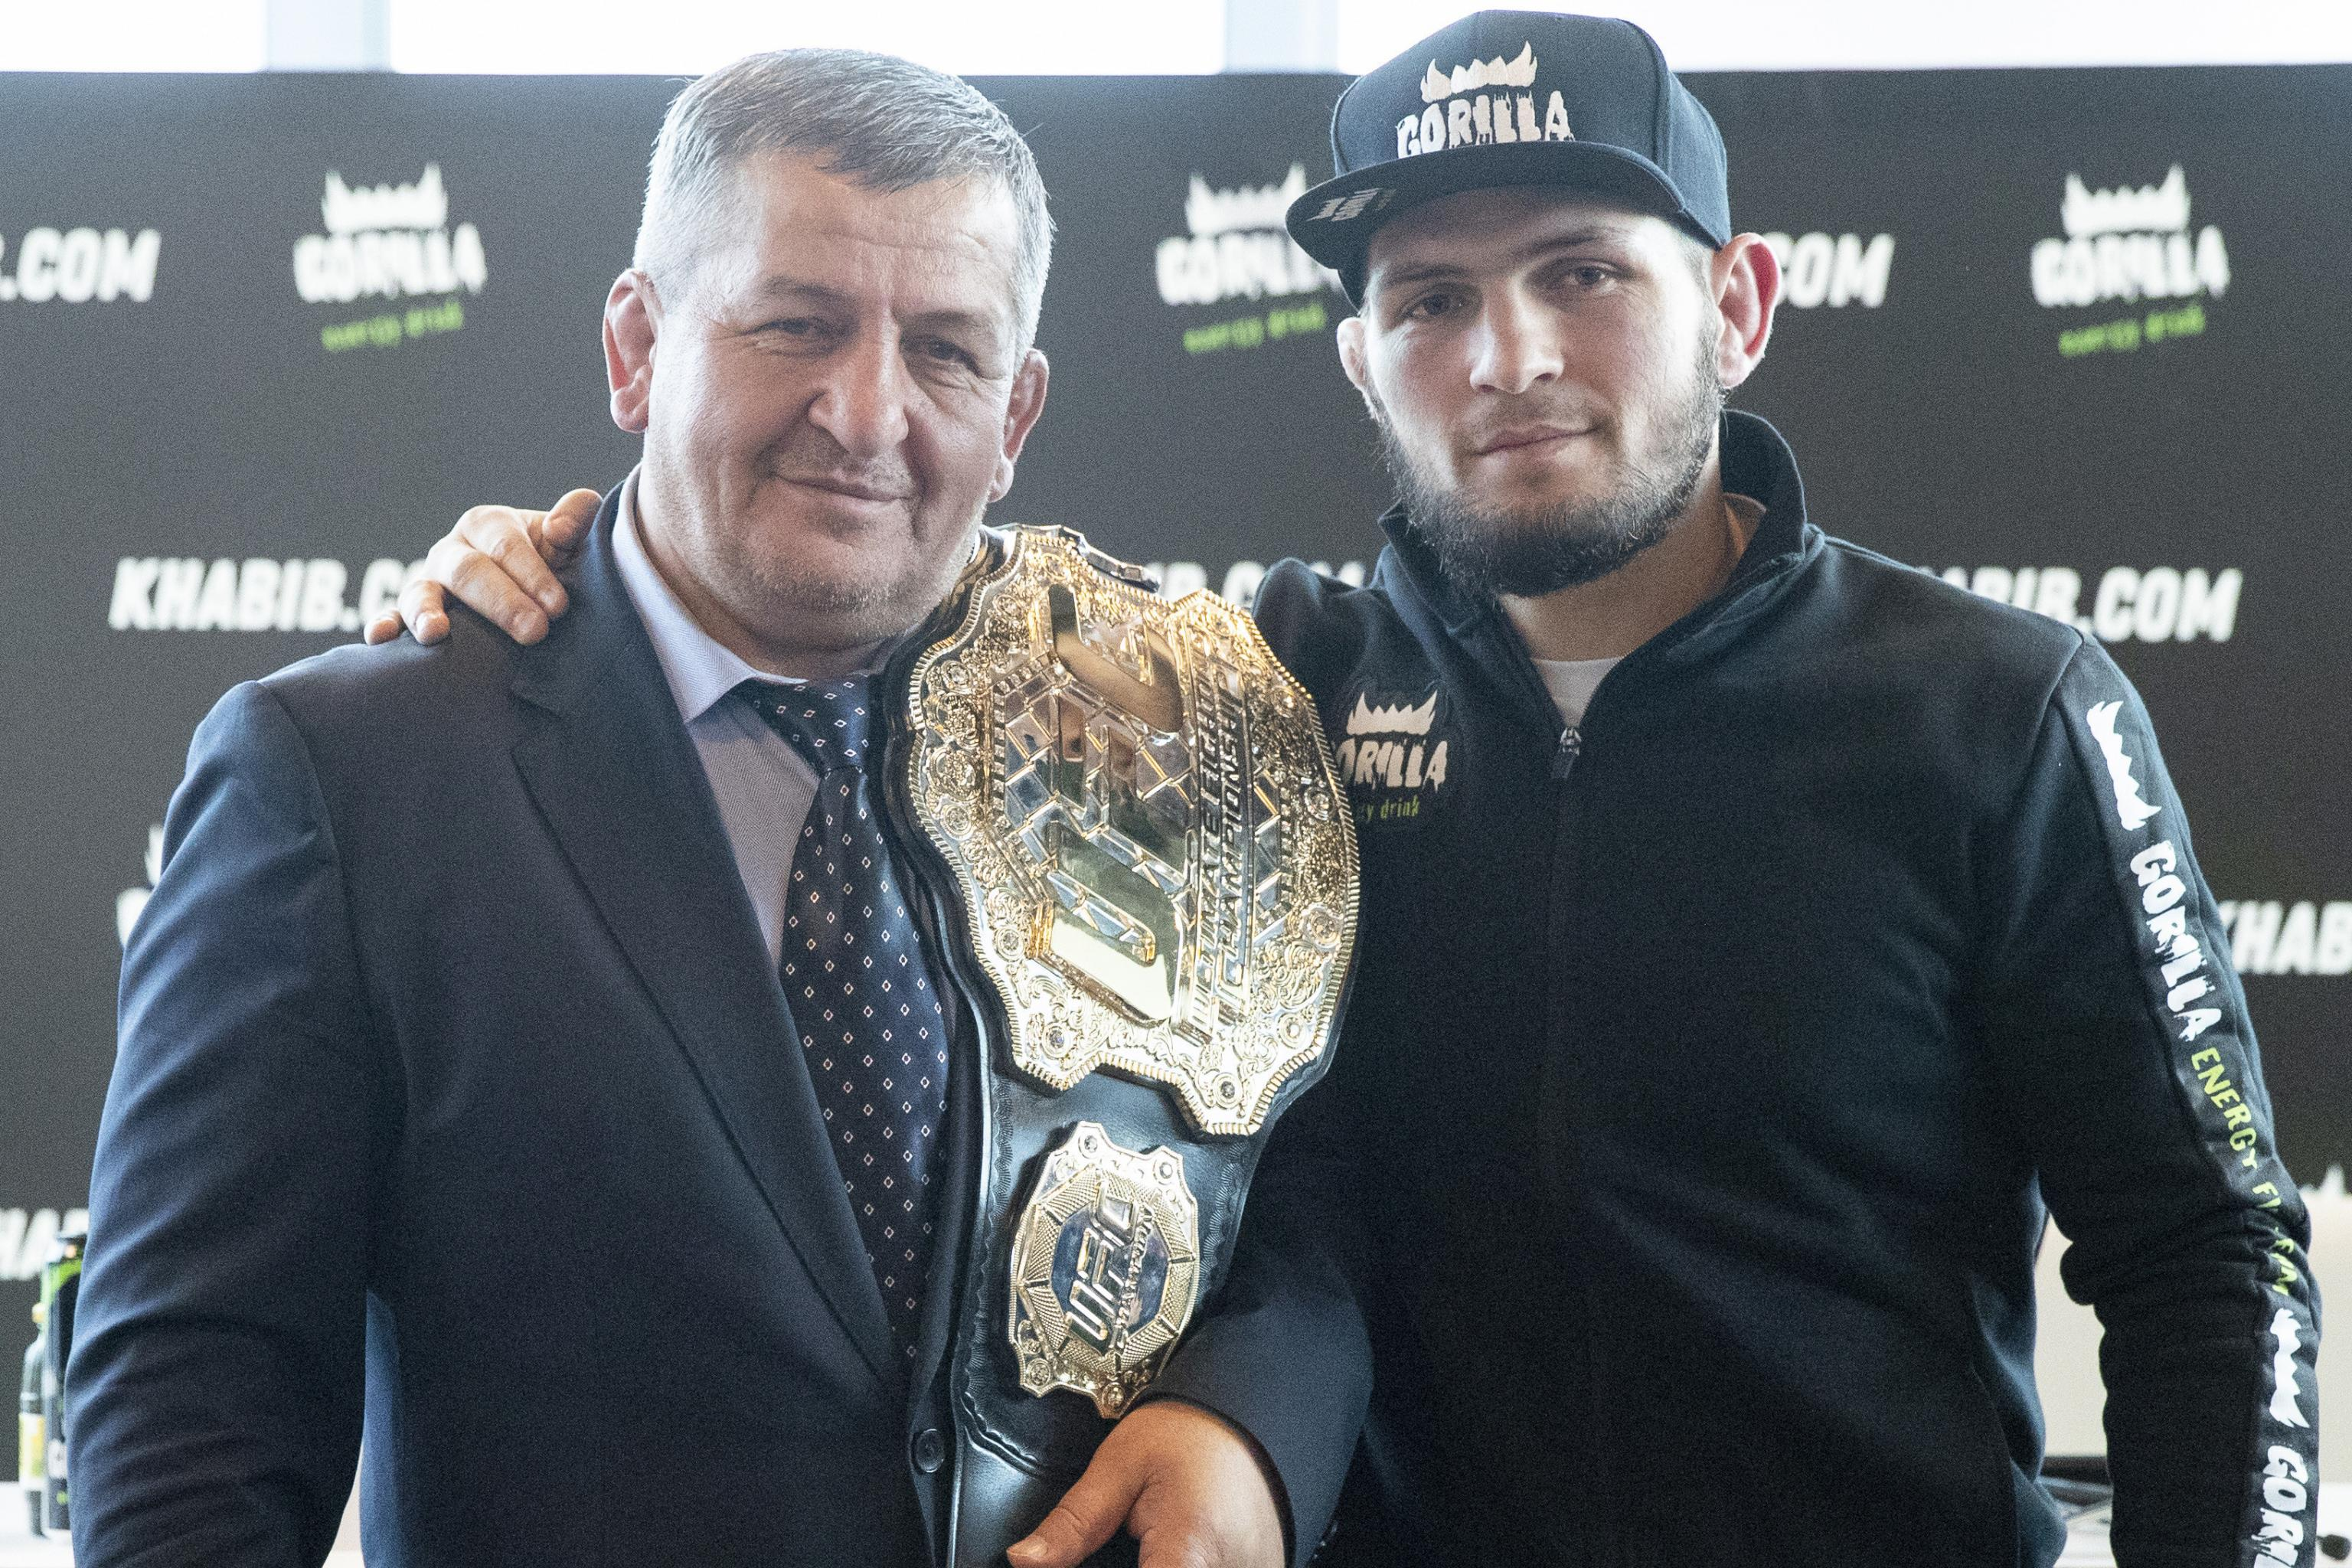 Khabib Nurmagomedov S Father Trainer Abdulmanap Dies At Age 57 Bleacher Report Latest News Videos And Highlights